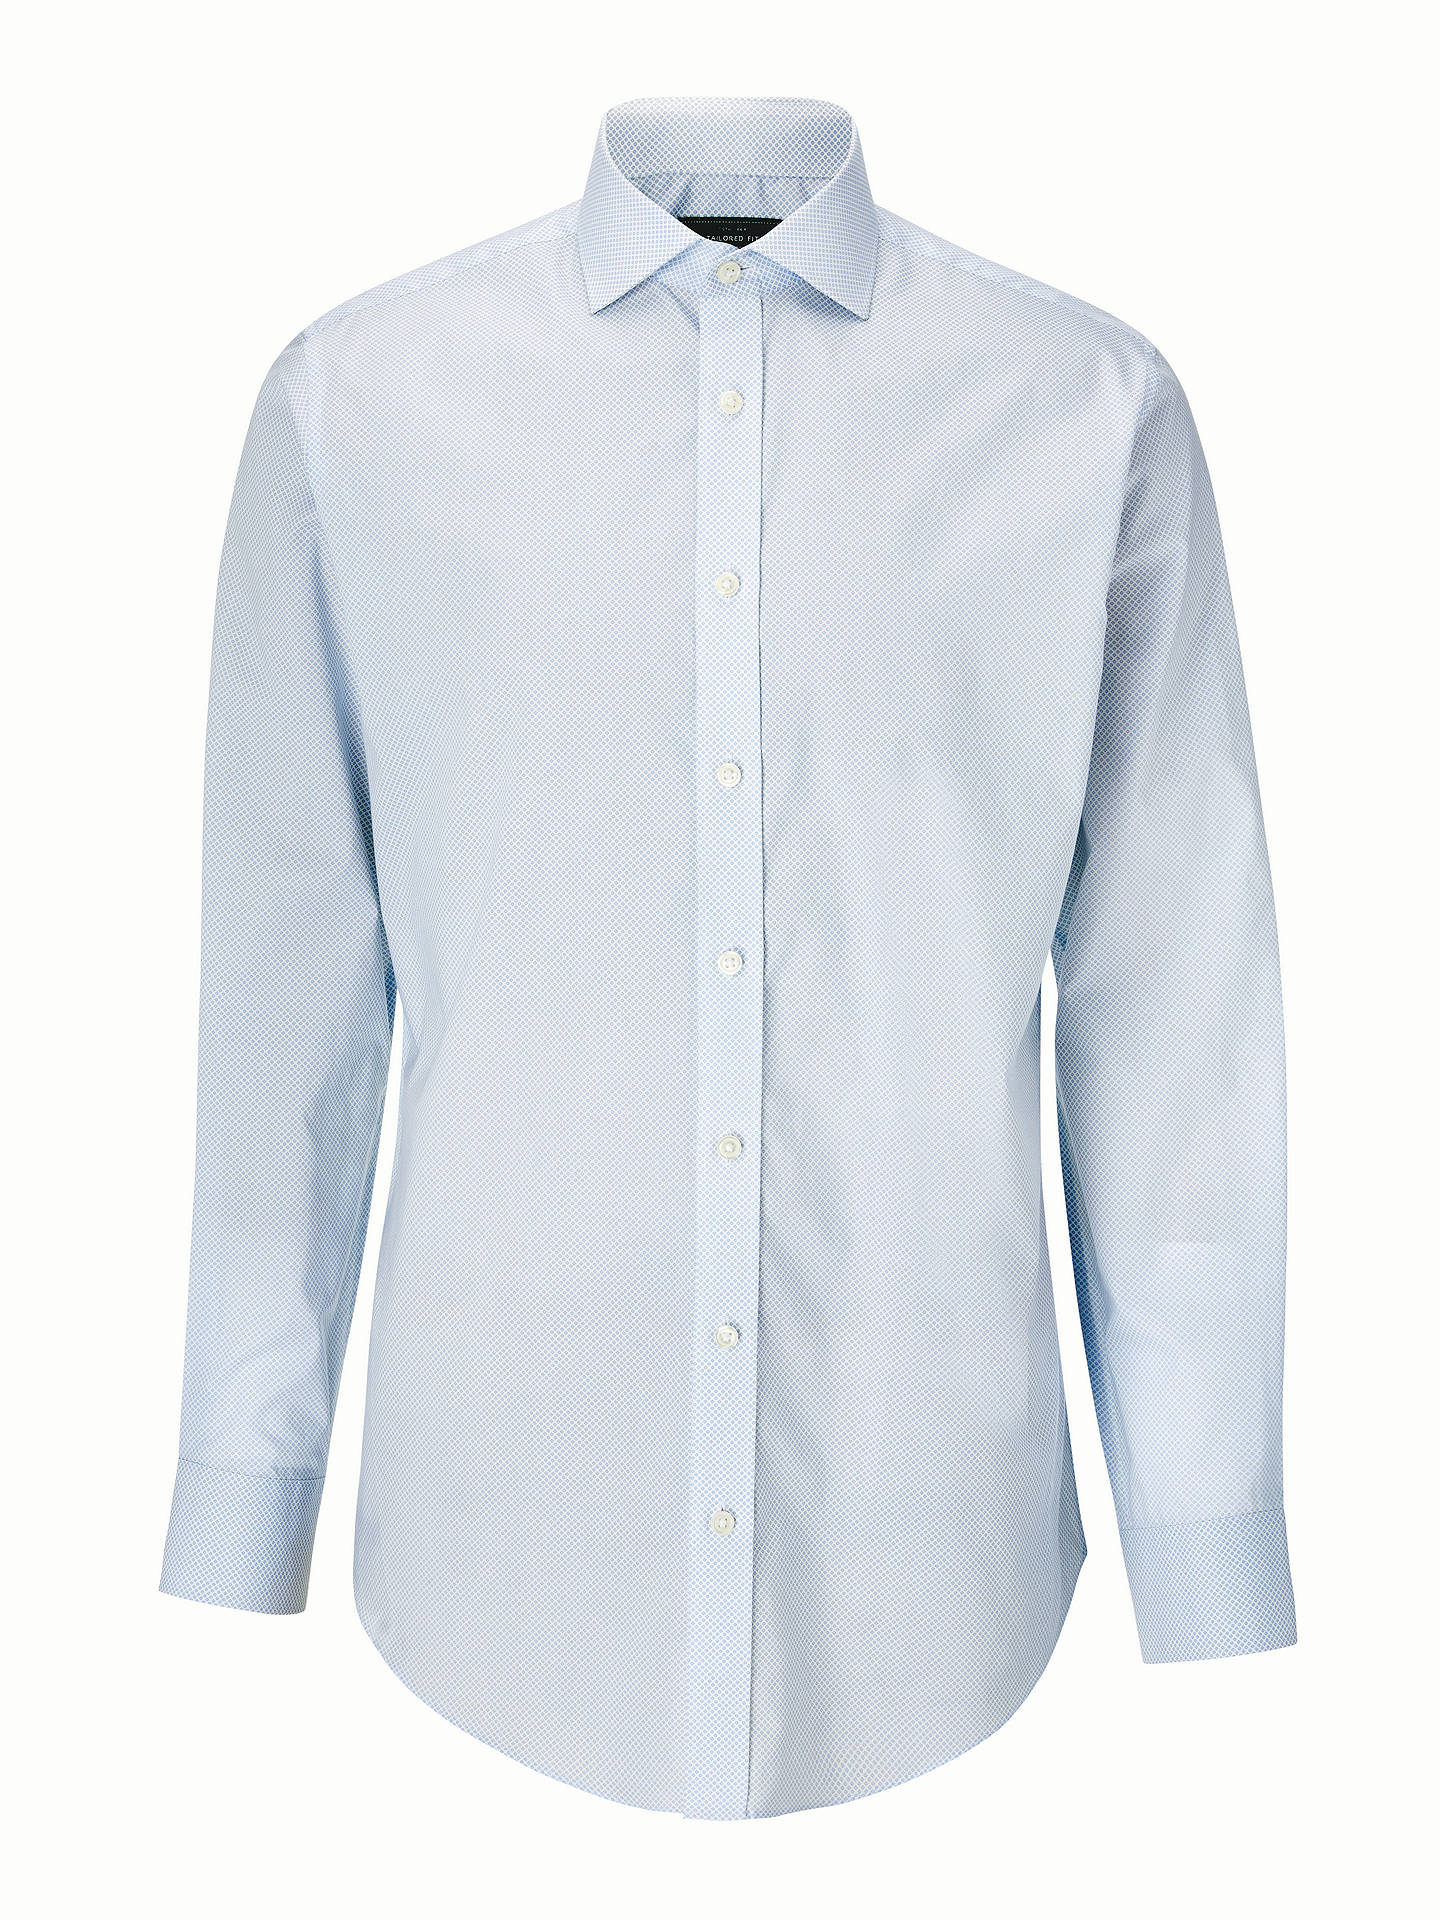 BuyJohn Lewis & Partners Tailored Mini Print Shirt, Blue, 15 Online at johnlewis.com